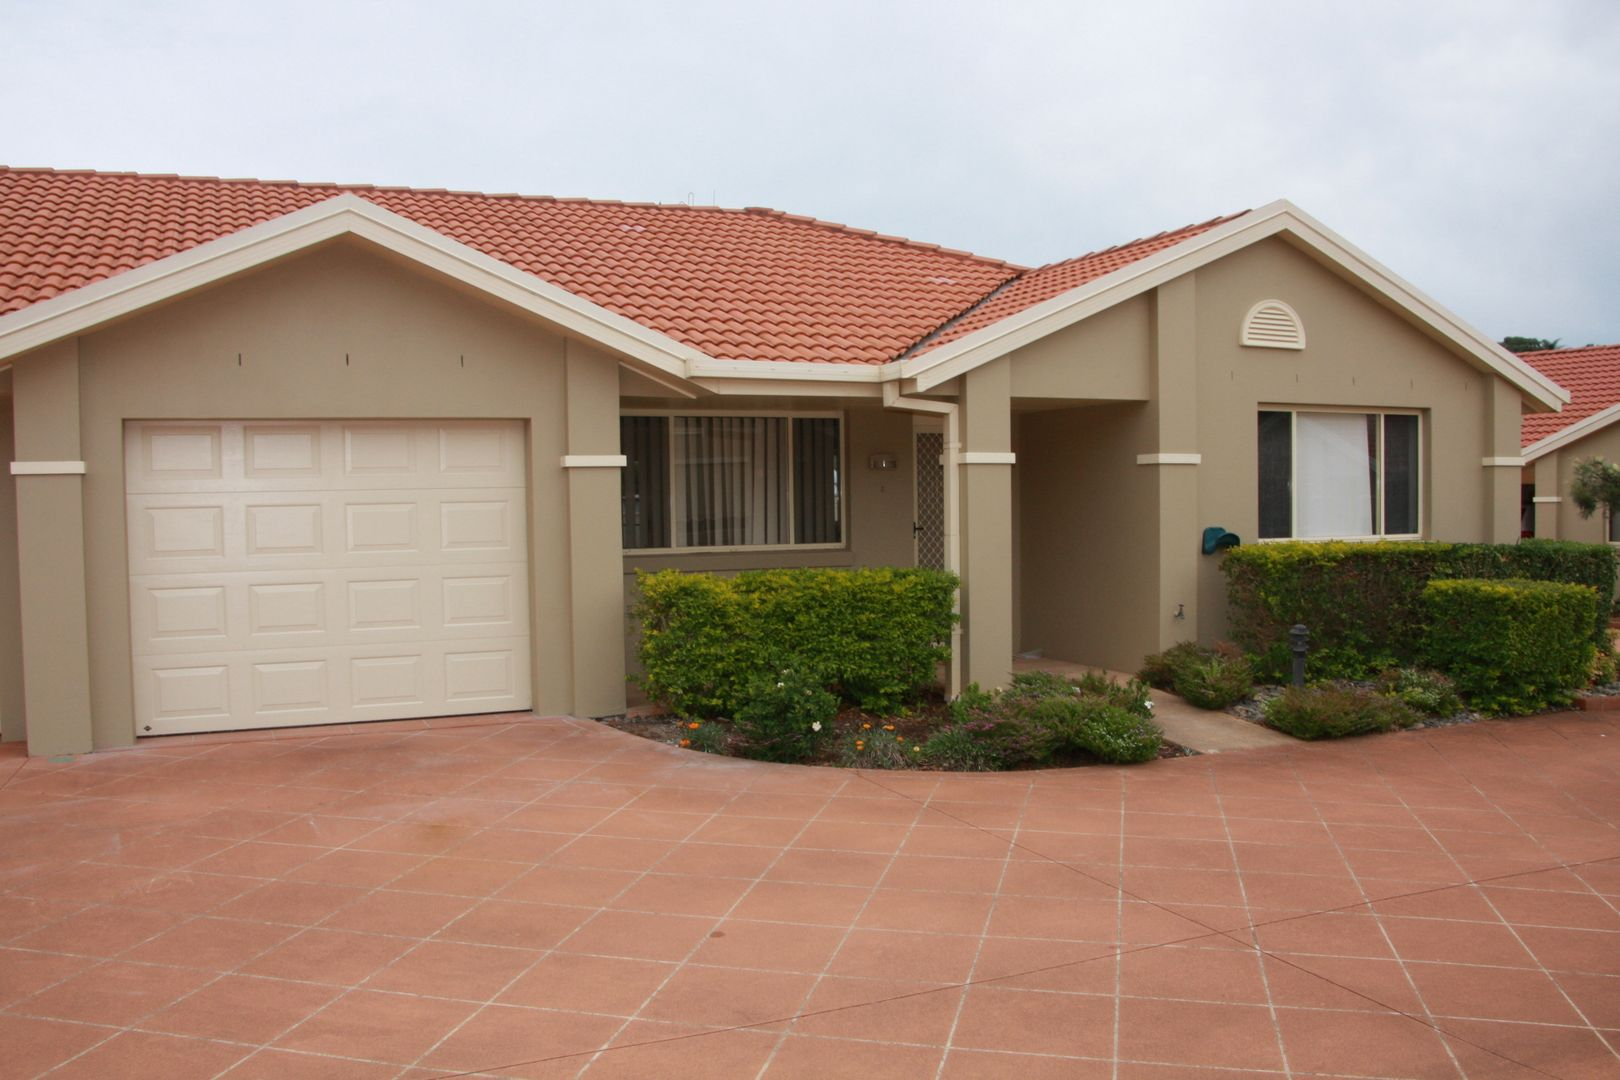 2/55 Amira Drive, Port Macquarie NSW 2444, Image 0